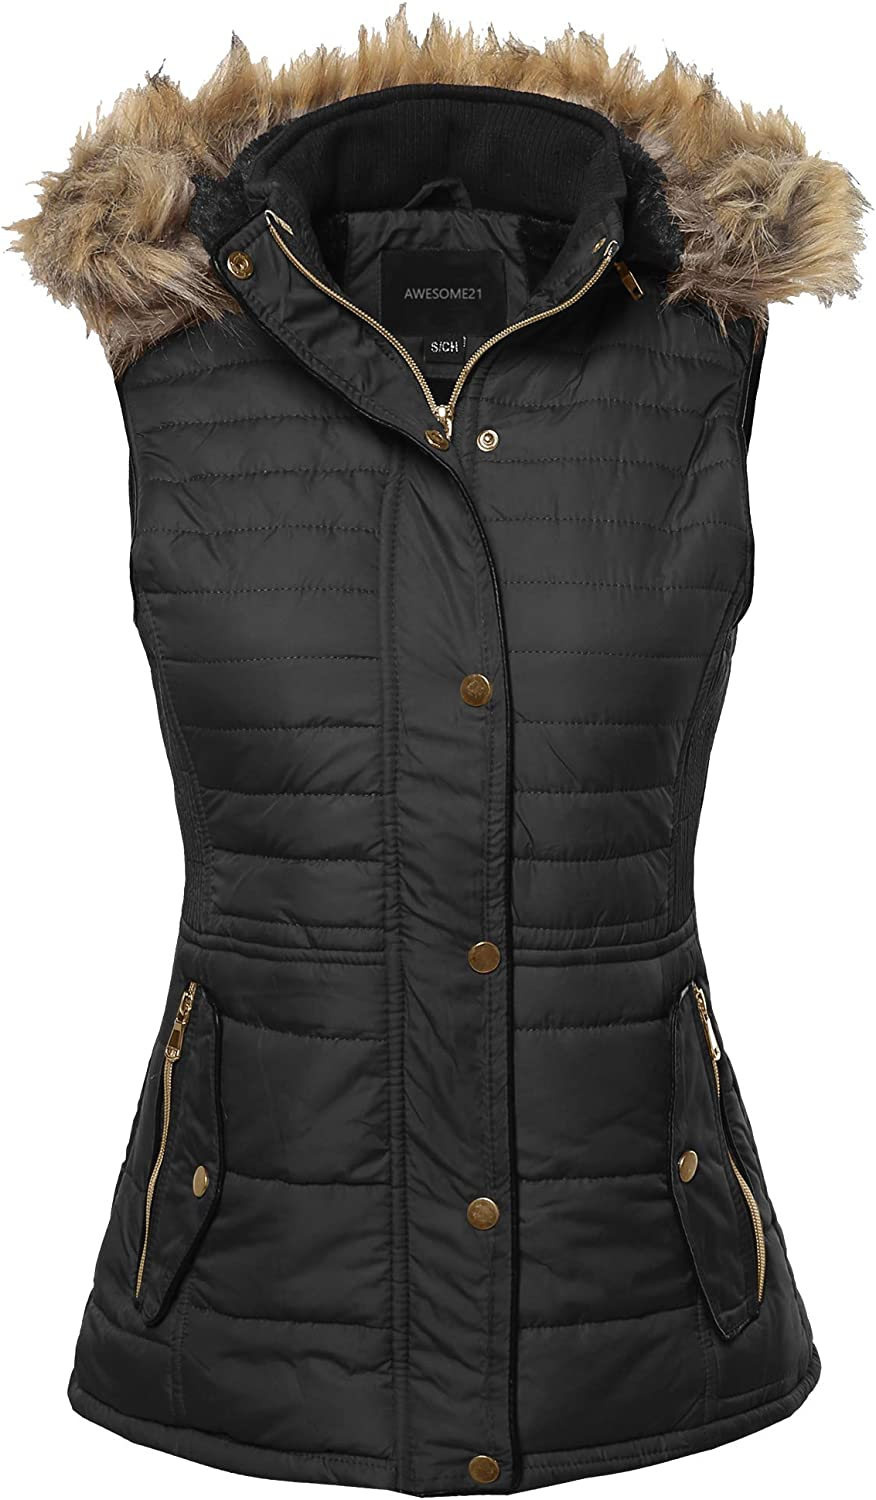 Awesome21 Women's Casual Solid Drawstring at Waist Anorak Vest with Detached Hoodie